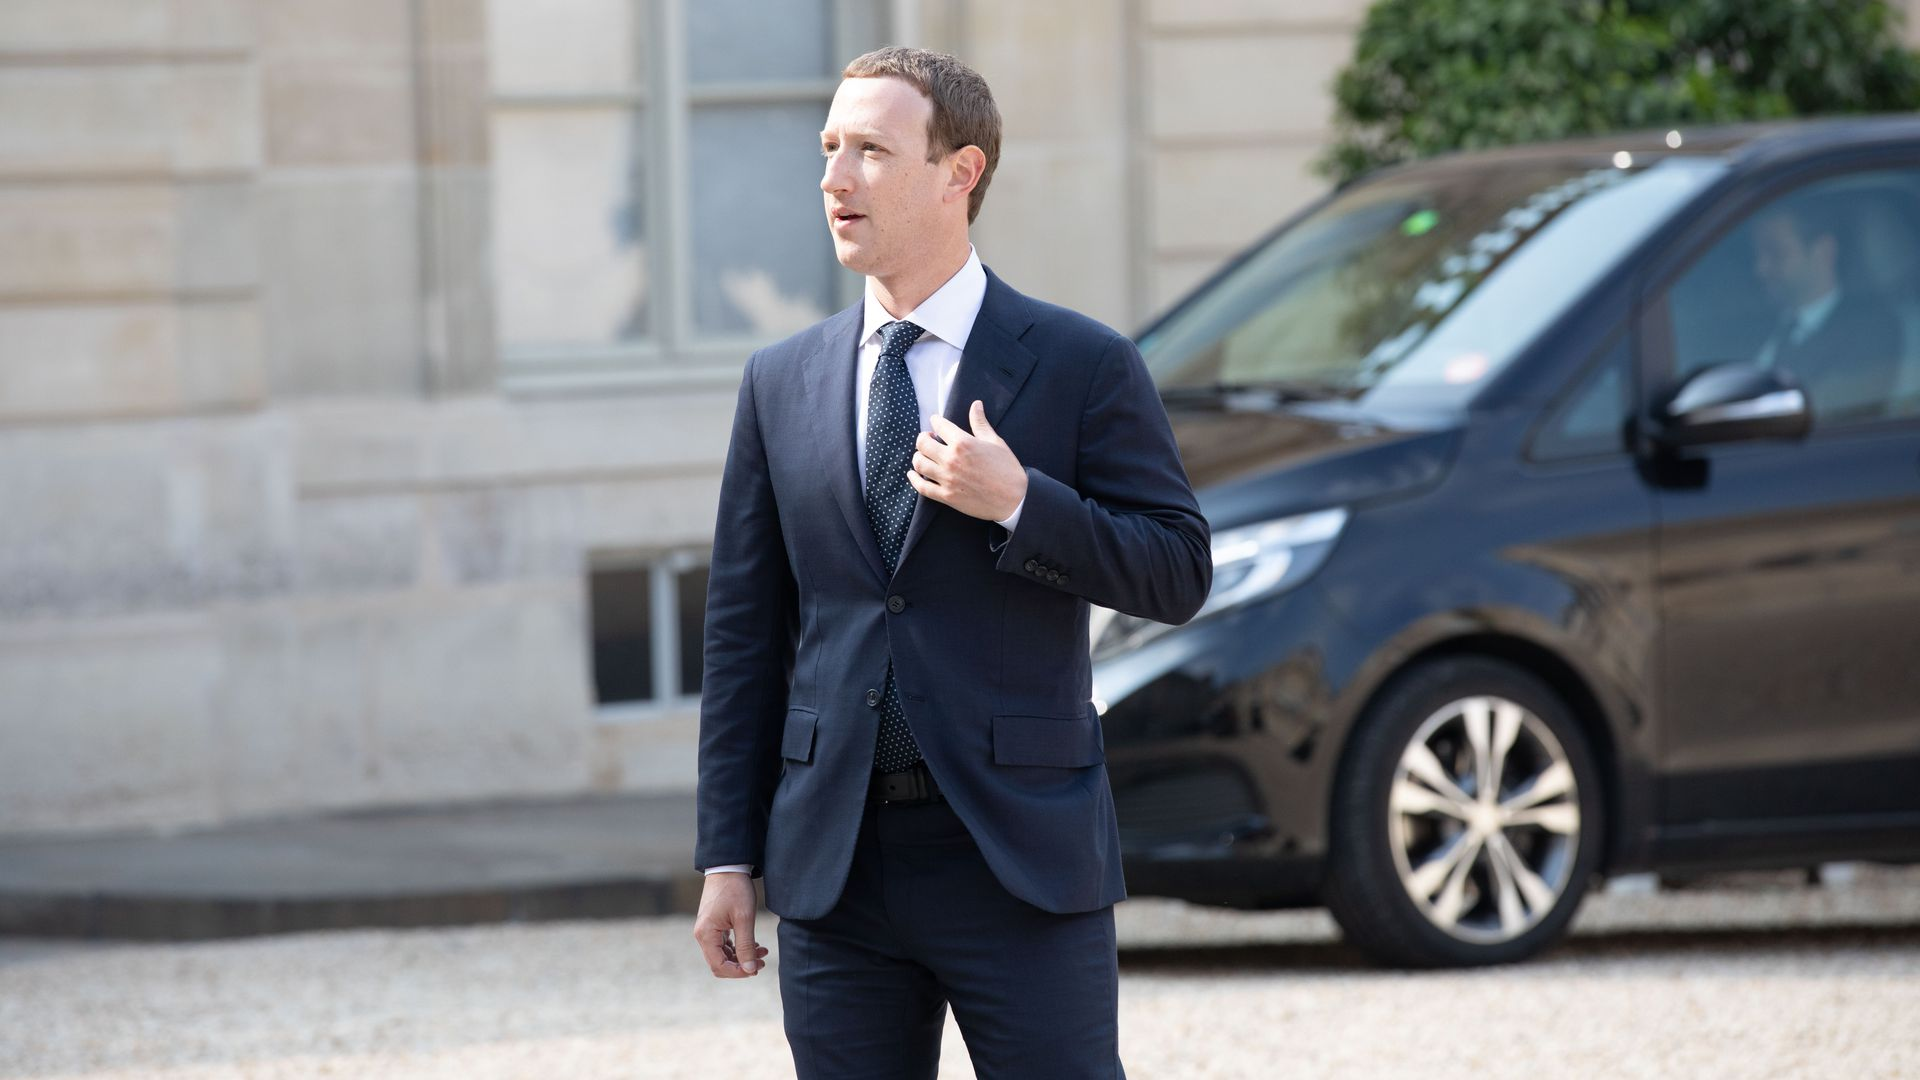 Mark Zuckerberg stands outside in a suit